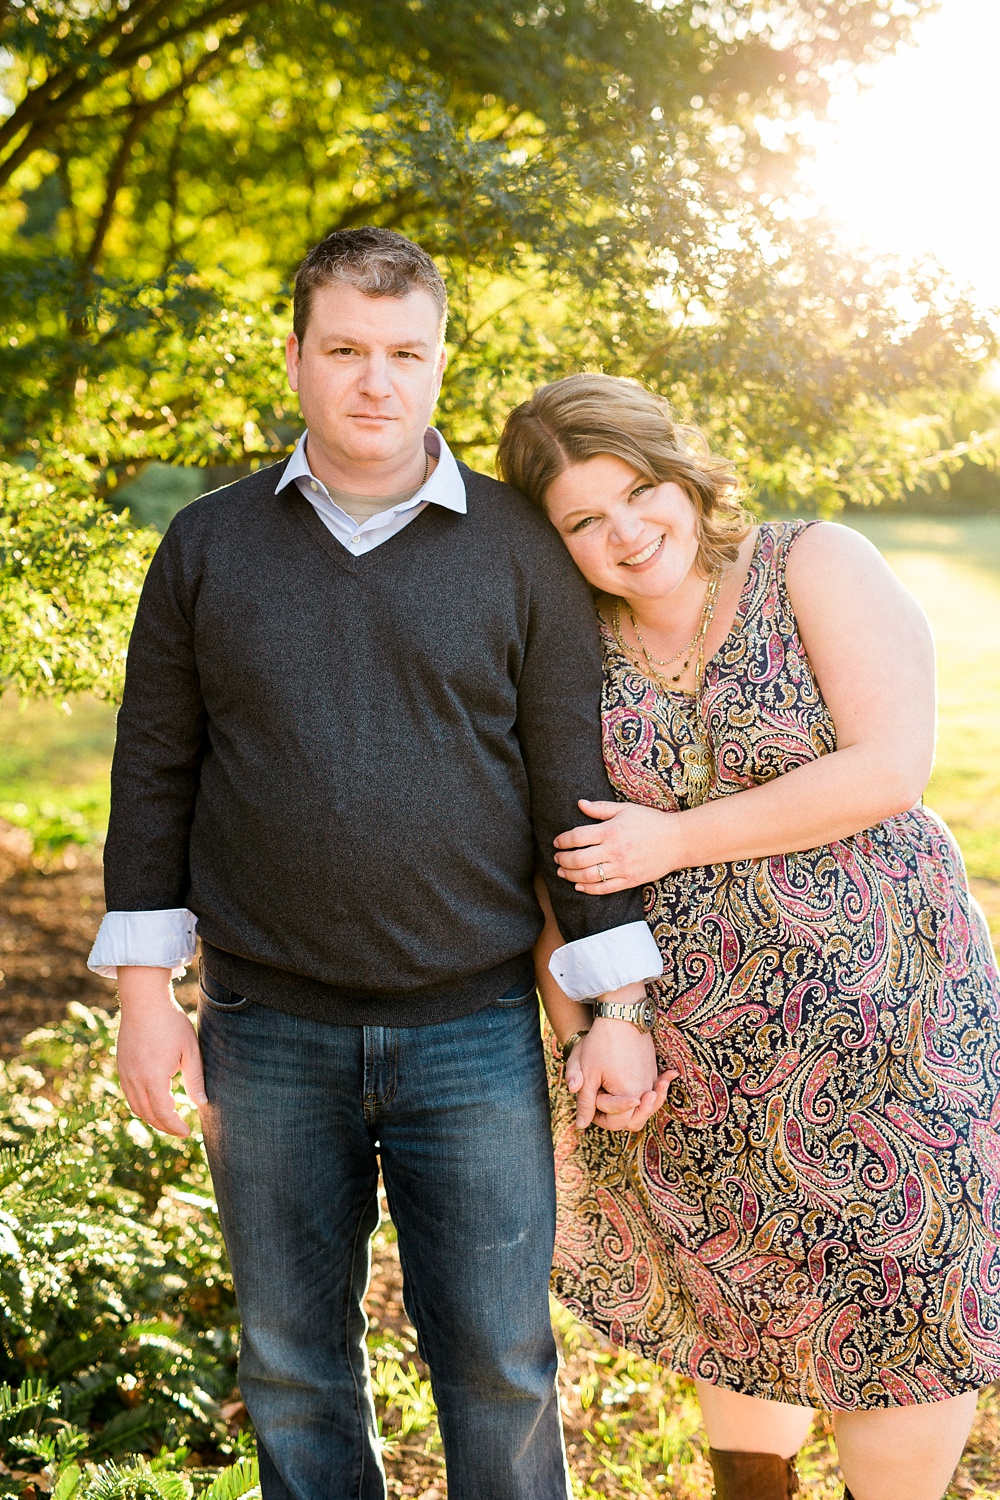 Engagement Session at NC State's JC Raulston Arboretum